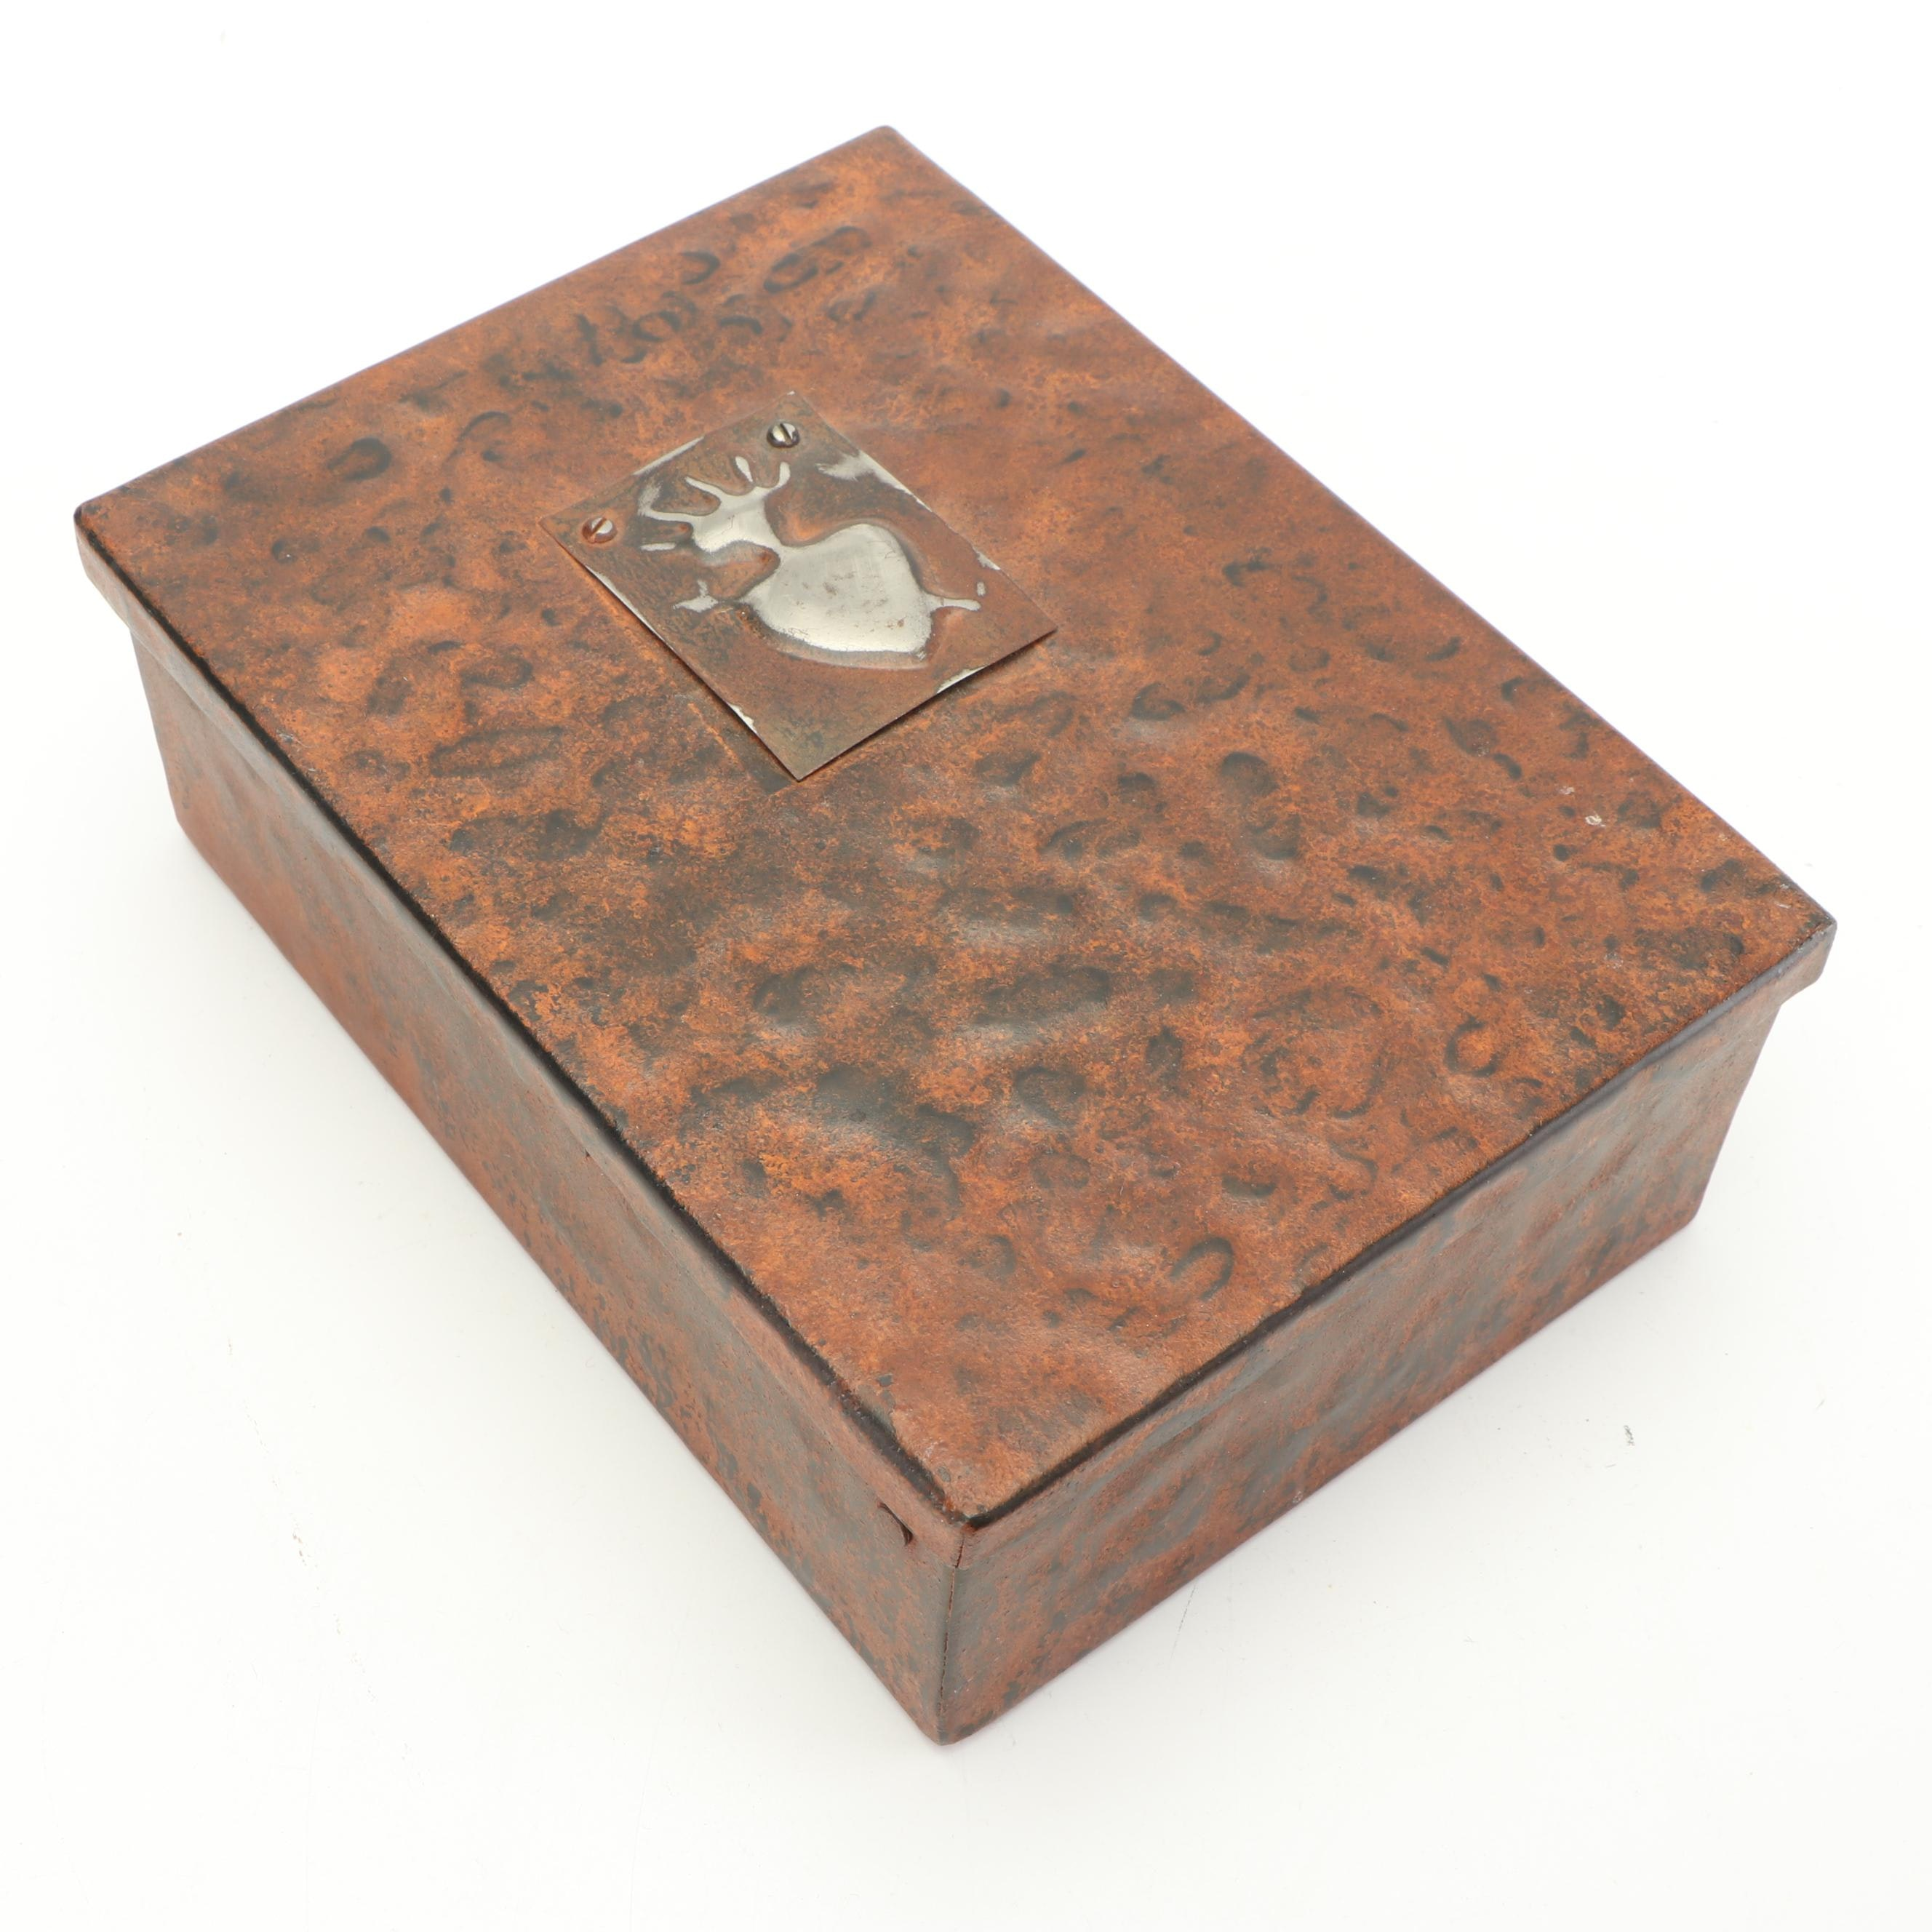 Jan Barboglio Hand Wrought Metal Box